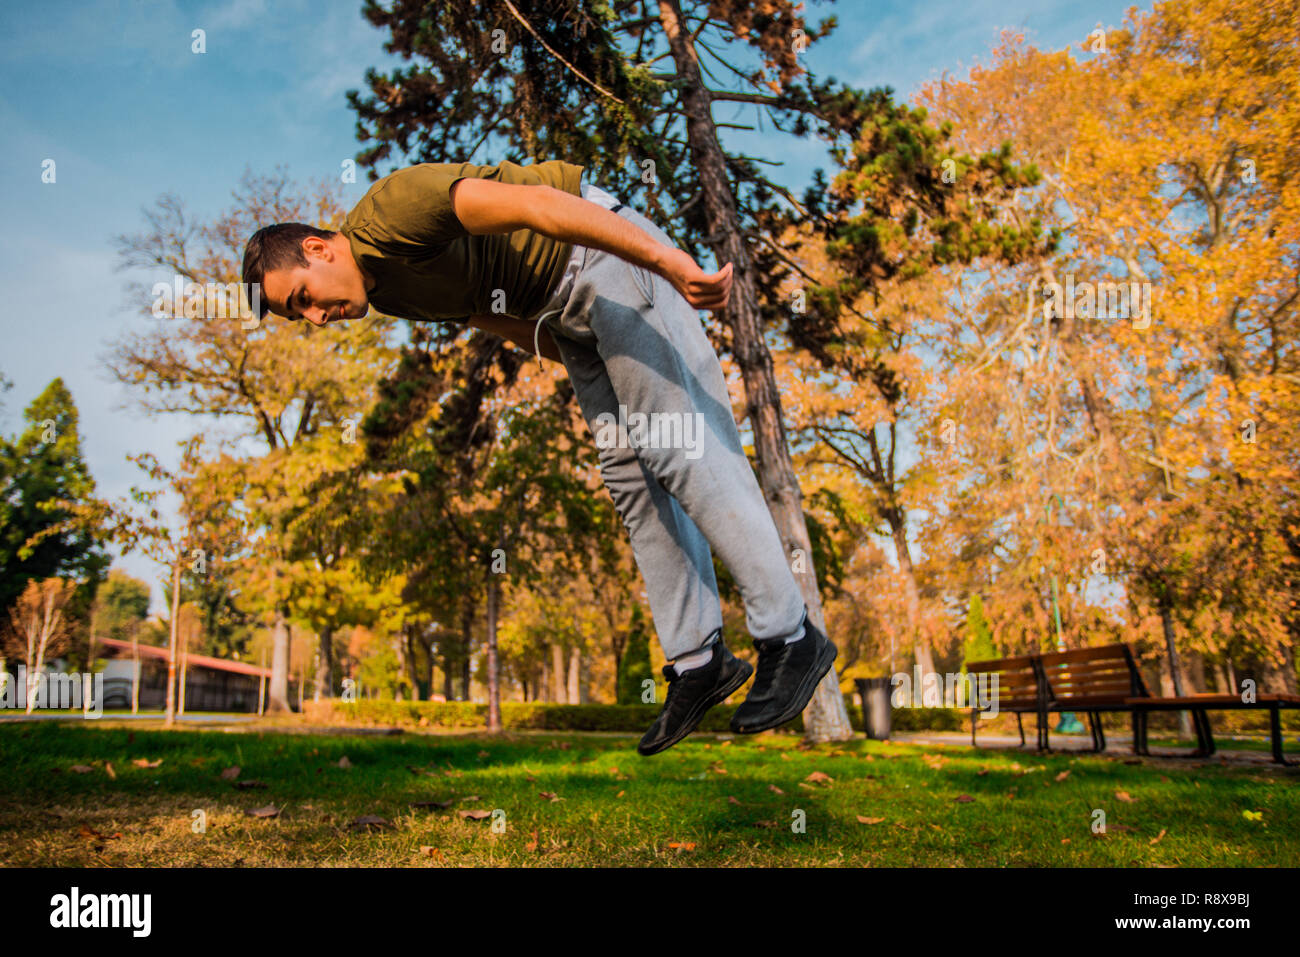 Young traceur doing frontflip jumping in nature - Stock Image